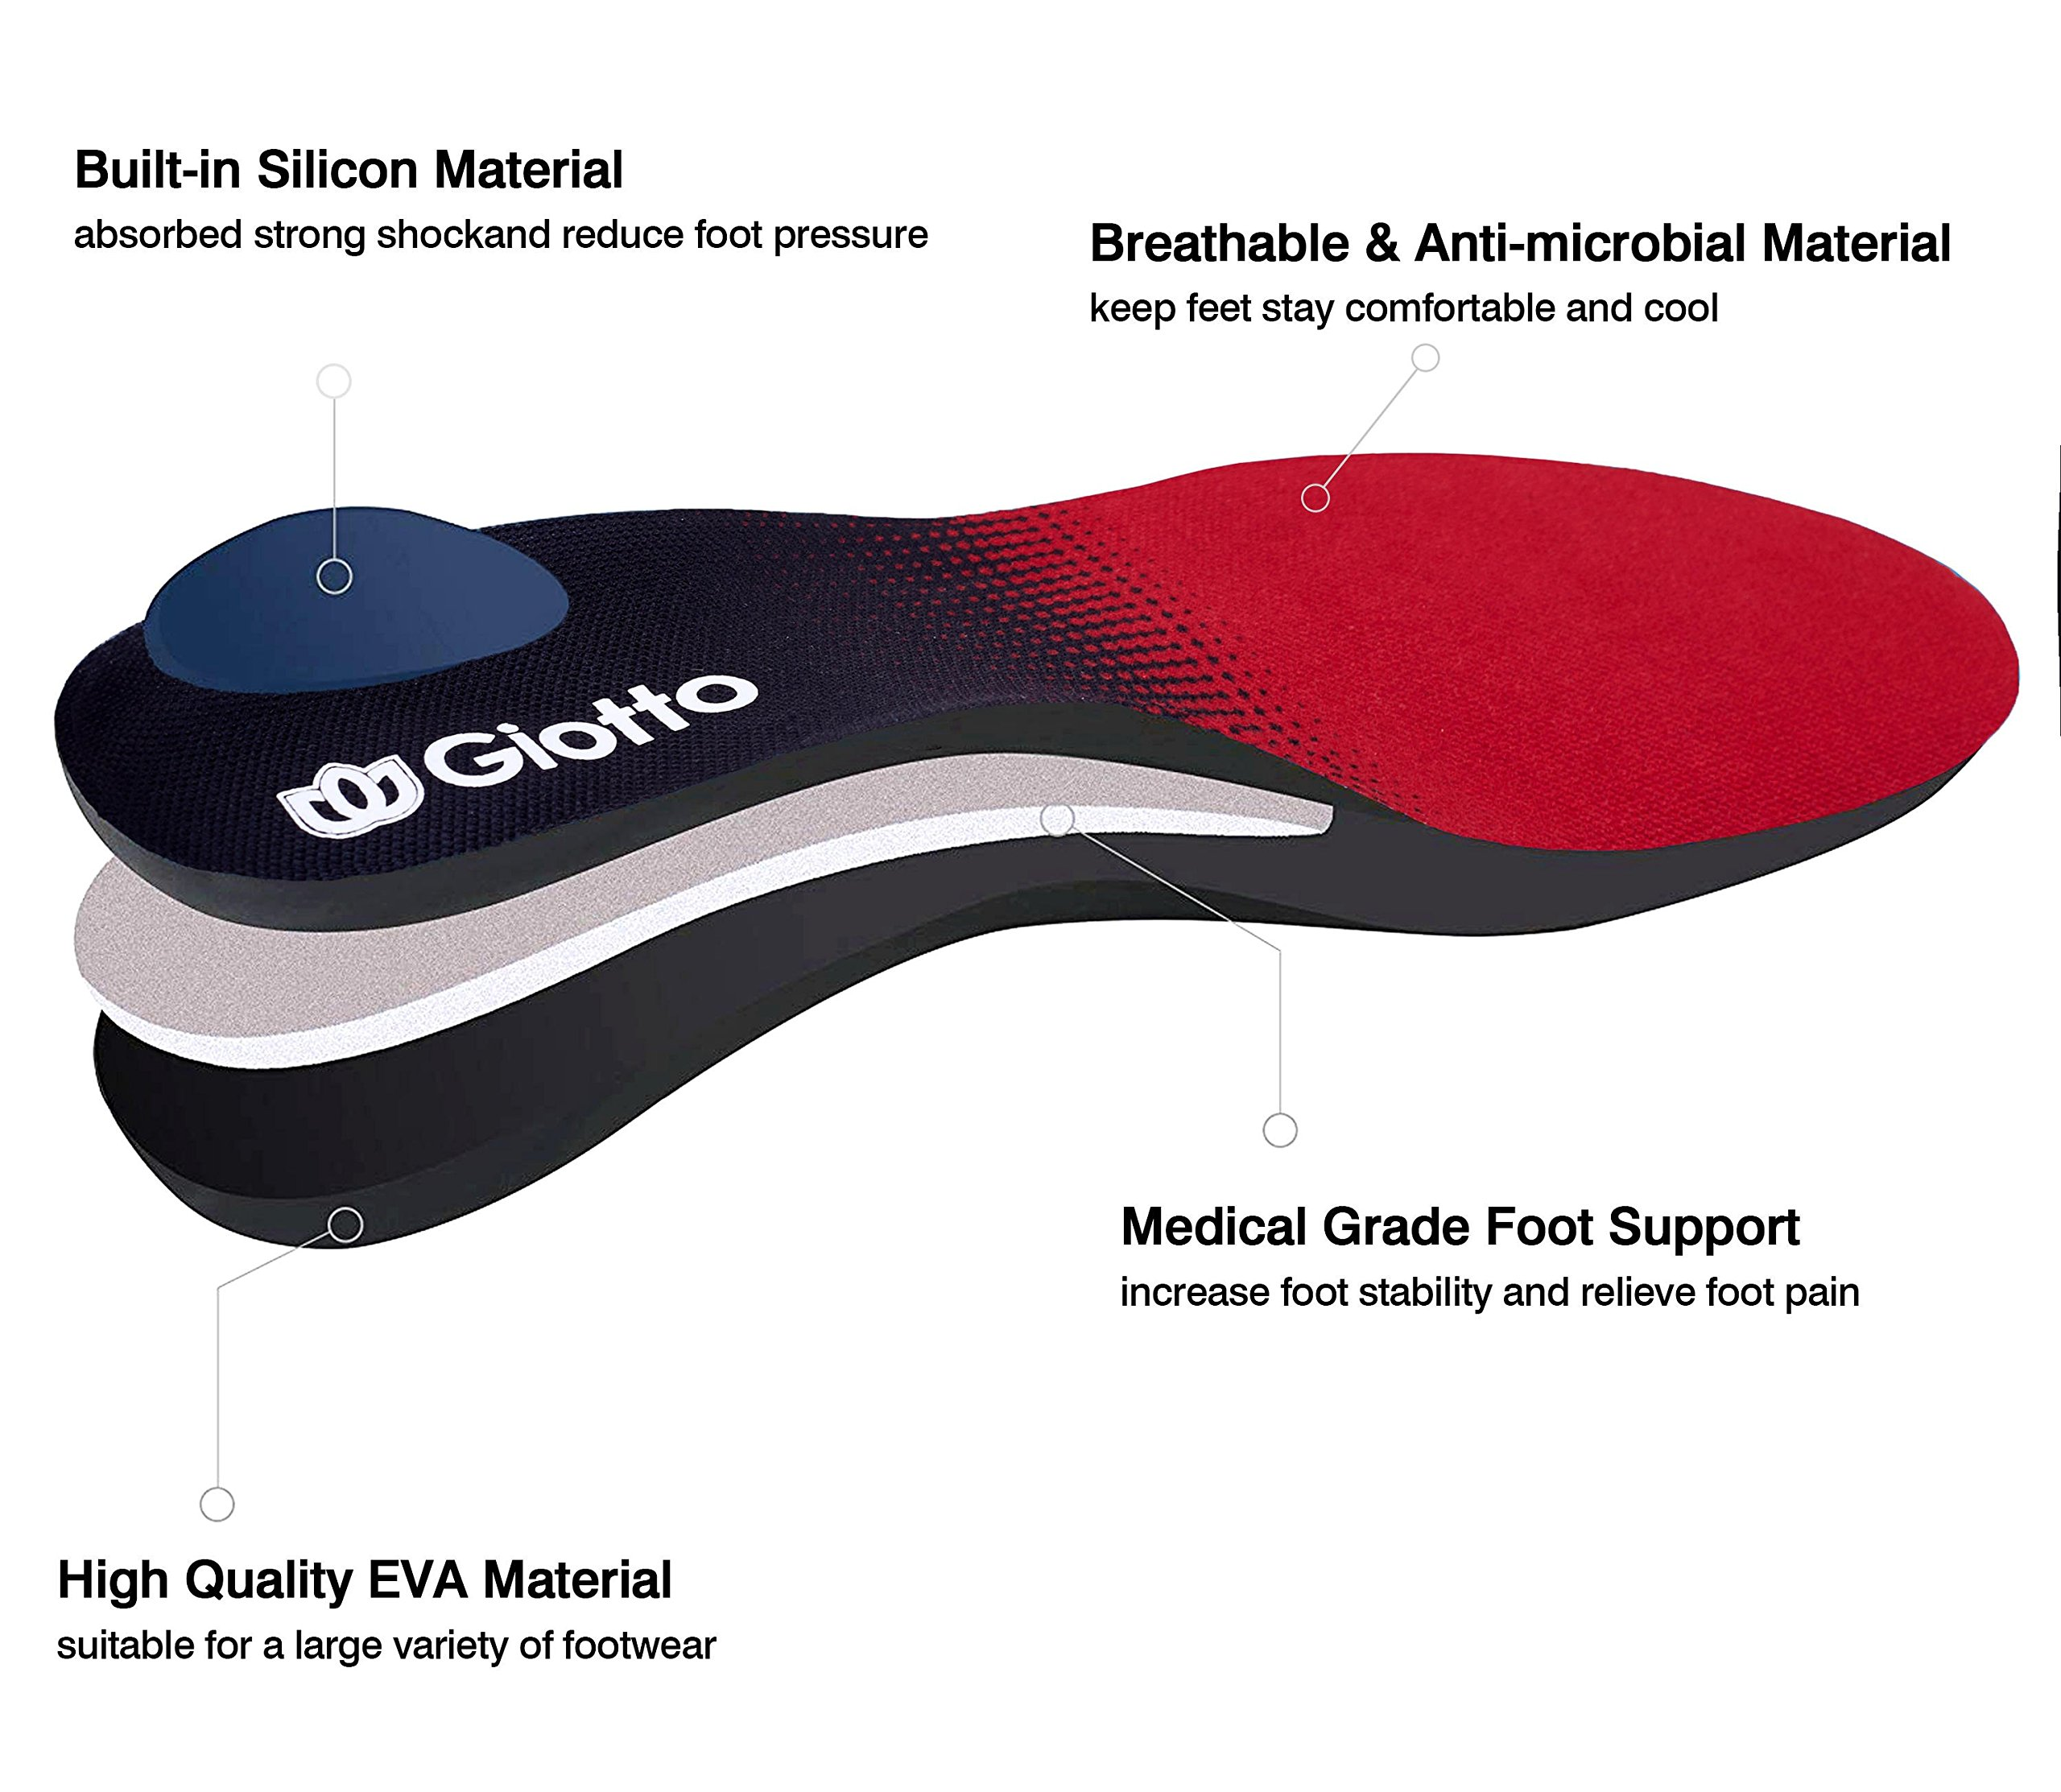 Giotto Plantar Fasciitis Flat Feet Orthotic High Arch Support Inserts Insoles Relieve Pronation Heel Ankle Foot Pain for Women Men-Black/Red-9 by Giotto (Image #4)